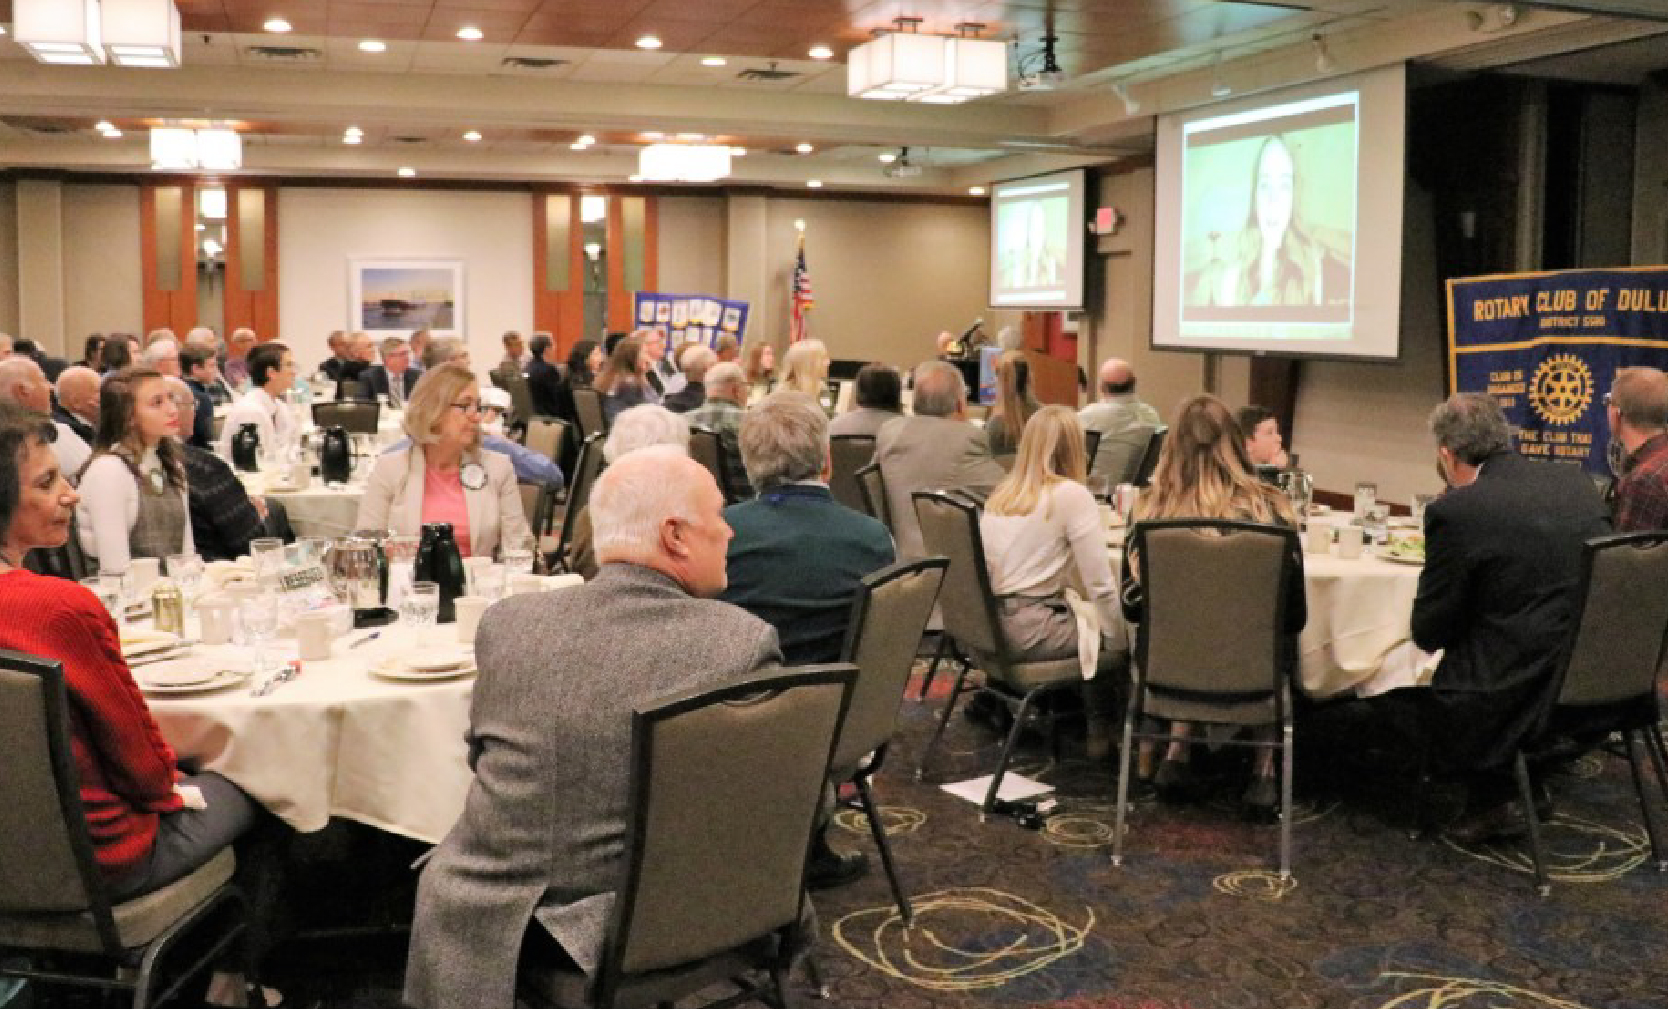 Picture of the Rotary Club of Duluth banquet